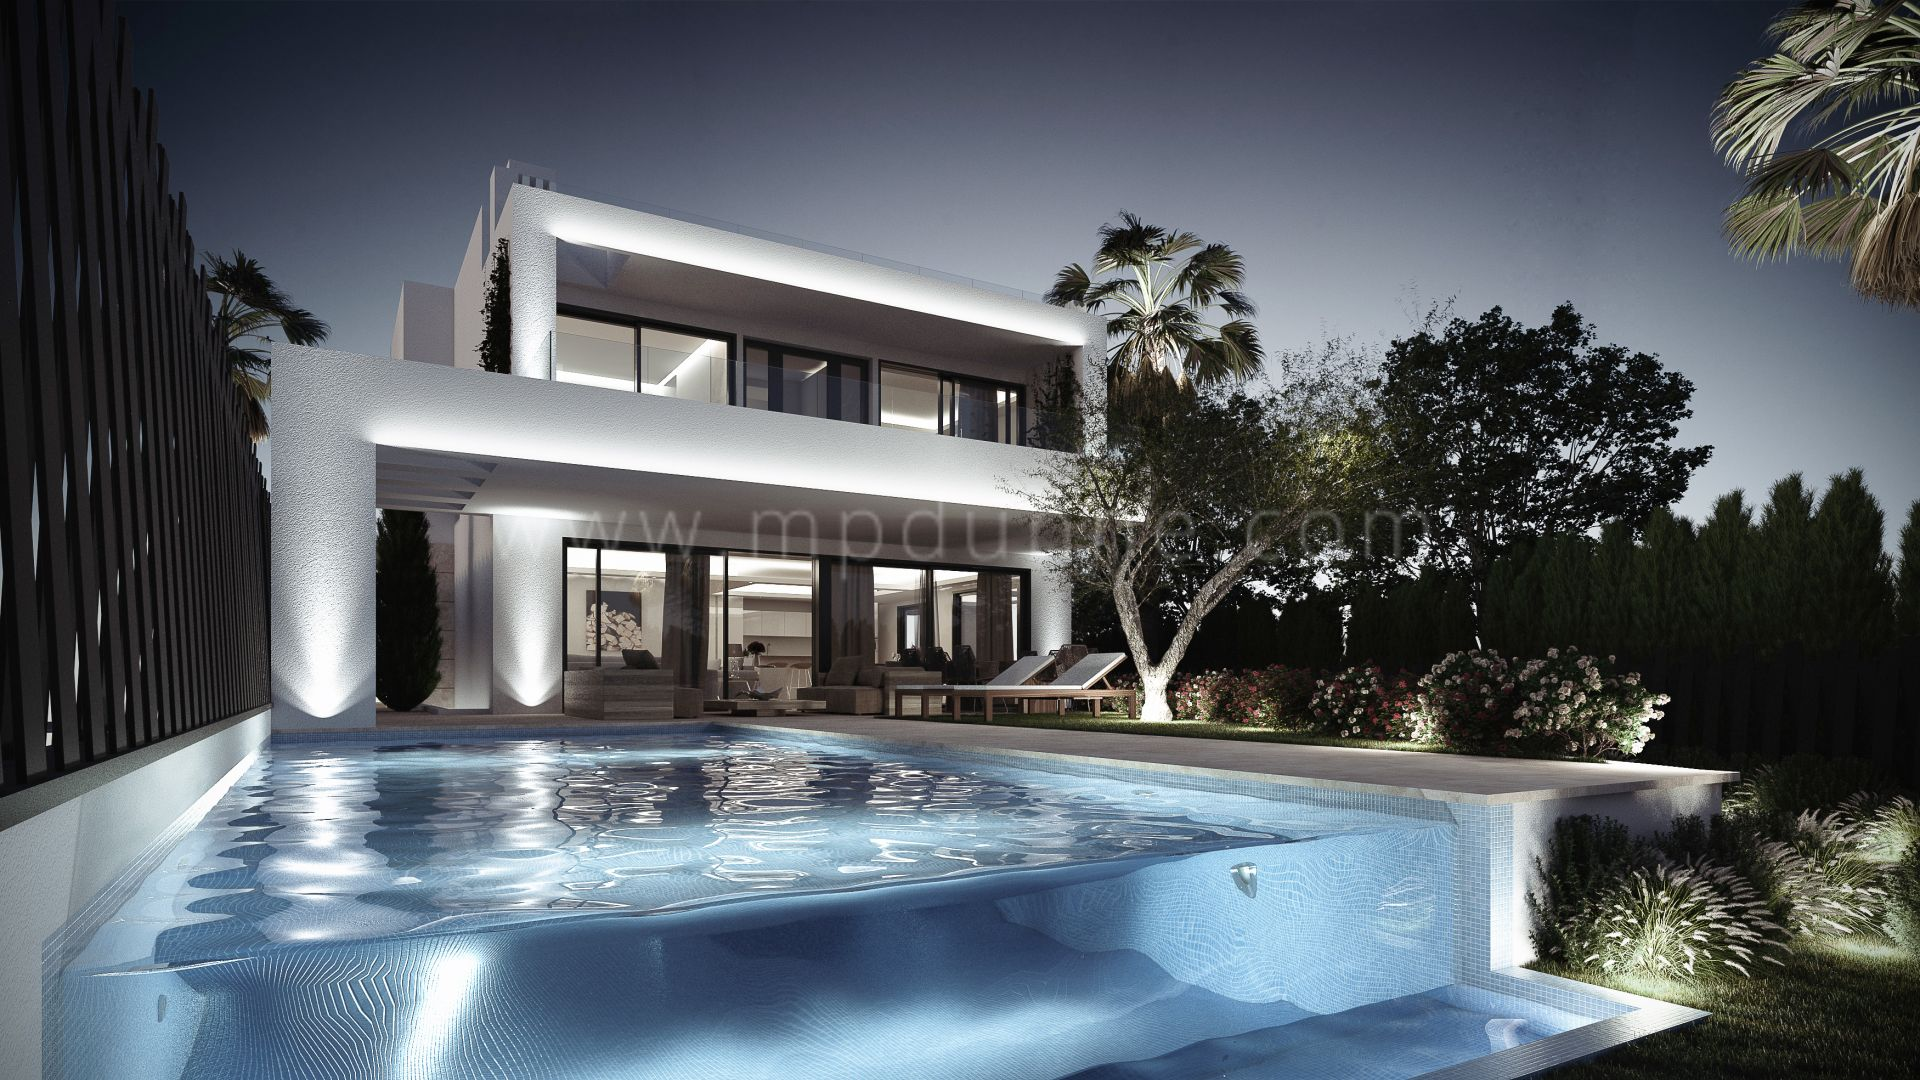 Development in Altos de Puente Romano, Marbella Golden Mile